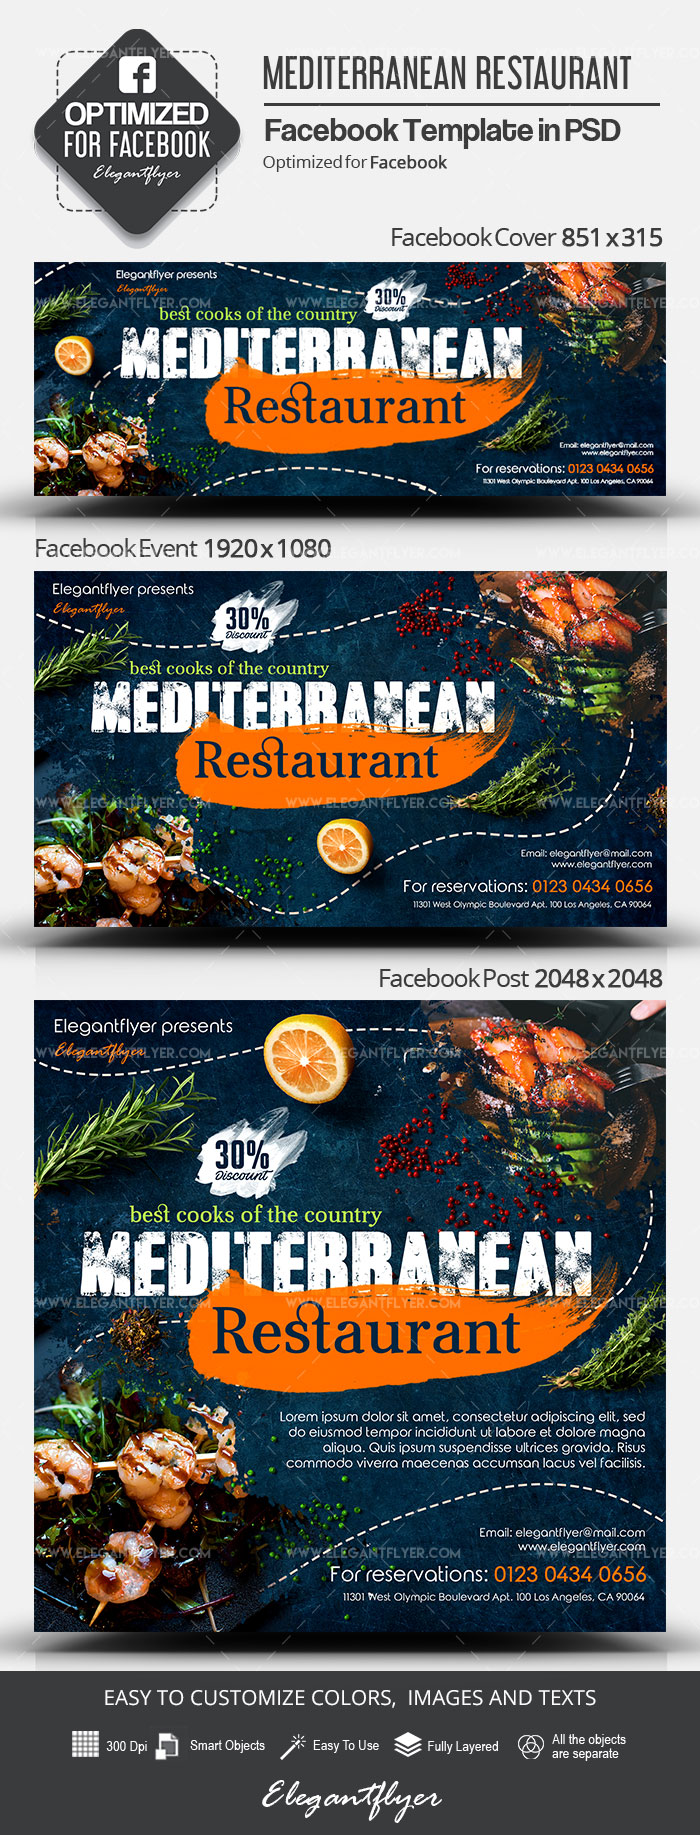 Mediterranean Restaurant – Facebook Cover Template in PSD + Post + Event cover